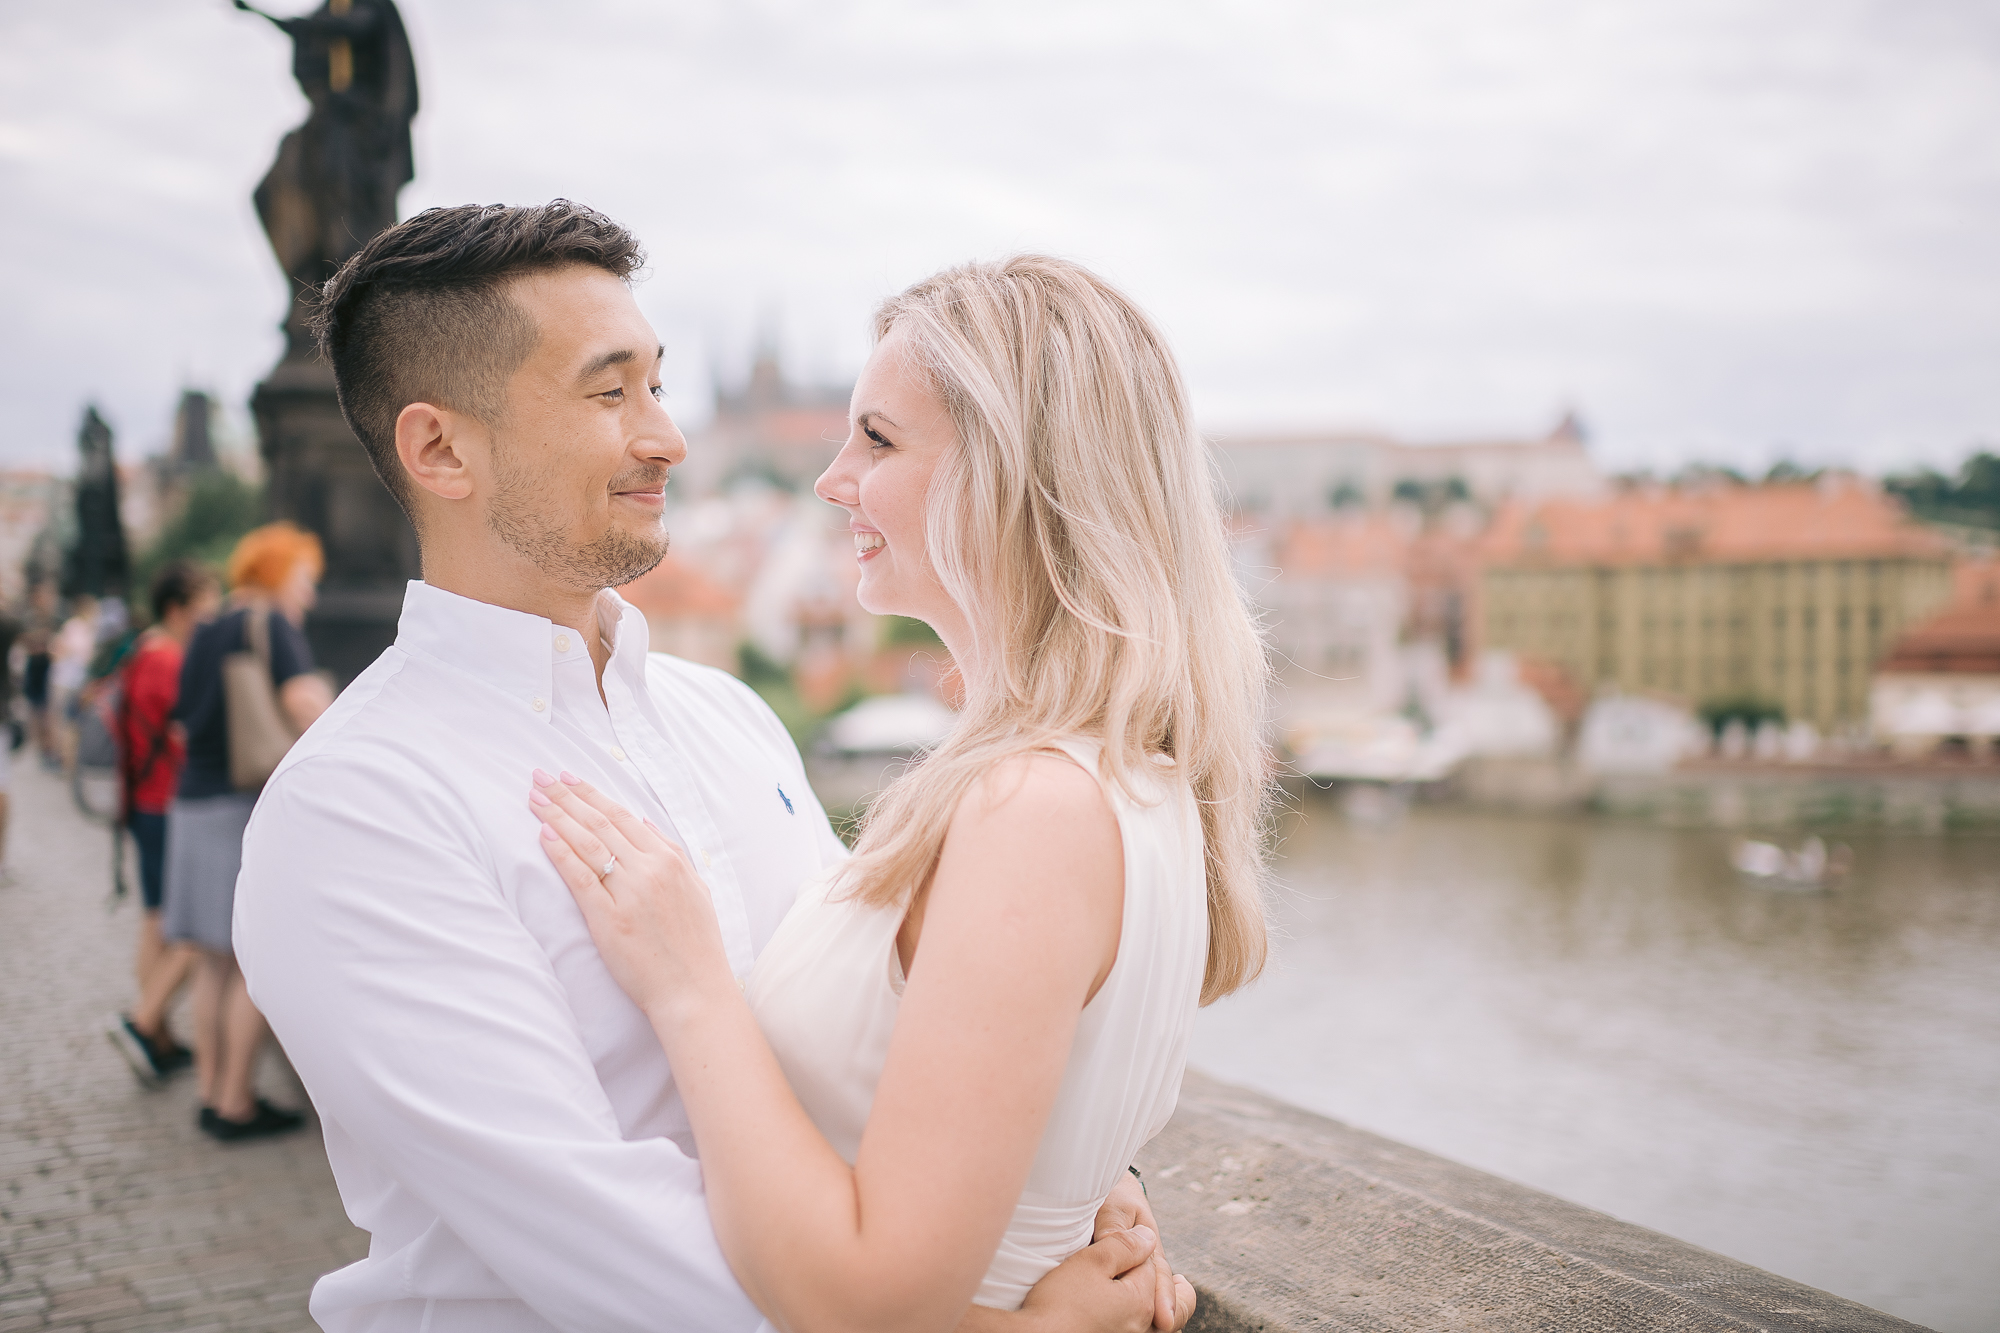 Prague-Wedding-Photography-Matej-Trasak-Engagement-AJ-115.jpg